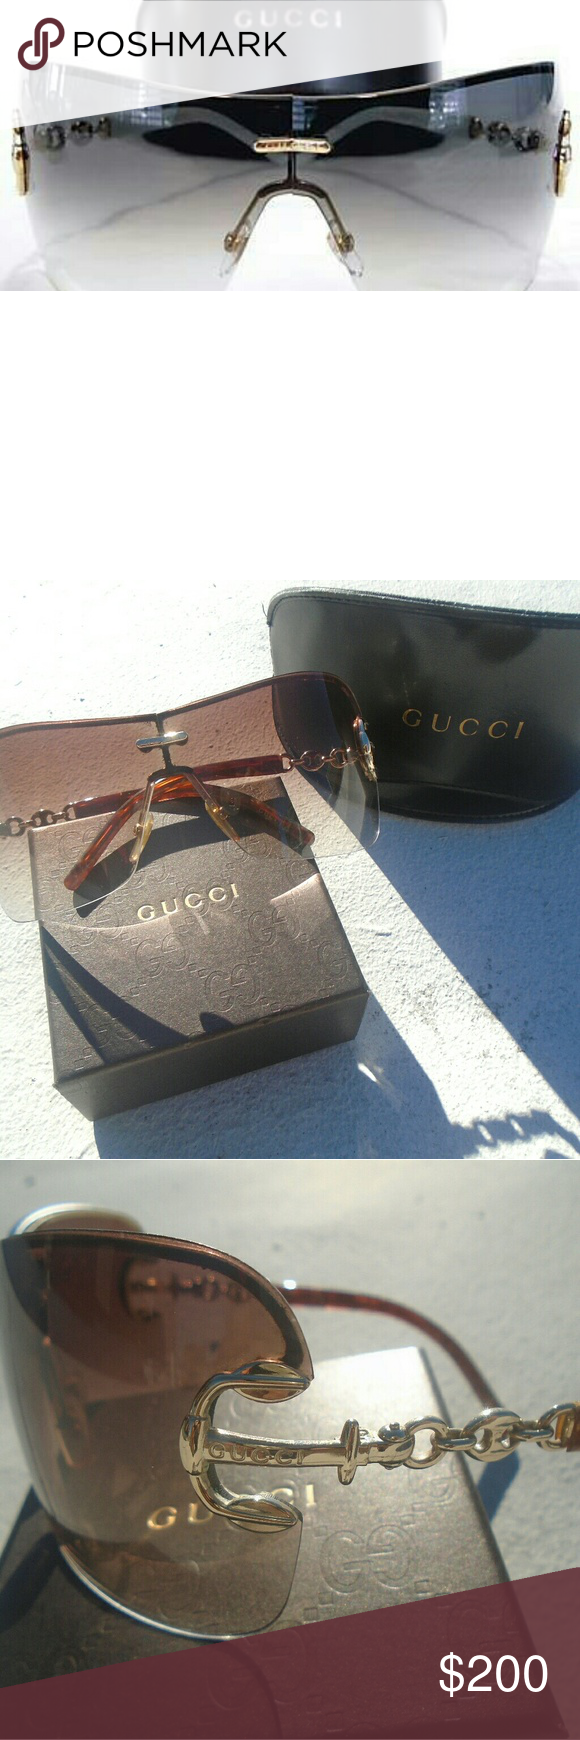 e1c744435f GUCCI SUNGLASSES GG 2771 S GUCCI SUNGLASSES VIOLET WITH GOLD LINK ARMS GG  2771 PRE-LOVED MINOR UN VISIBLE SCRATCH PICTURED SUGGESTED SELLER SHOP WITH  ...